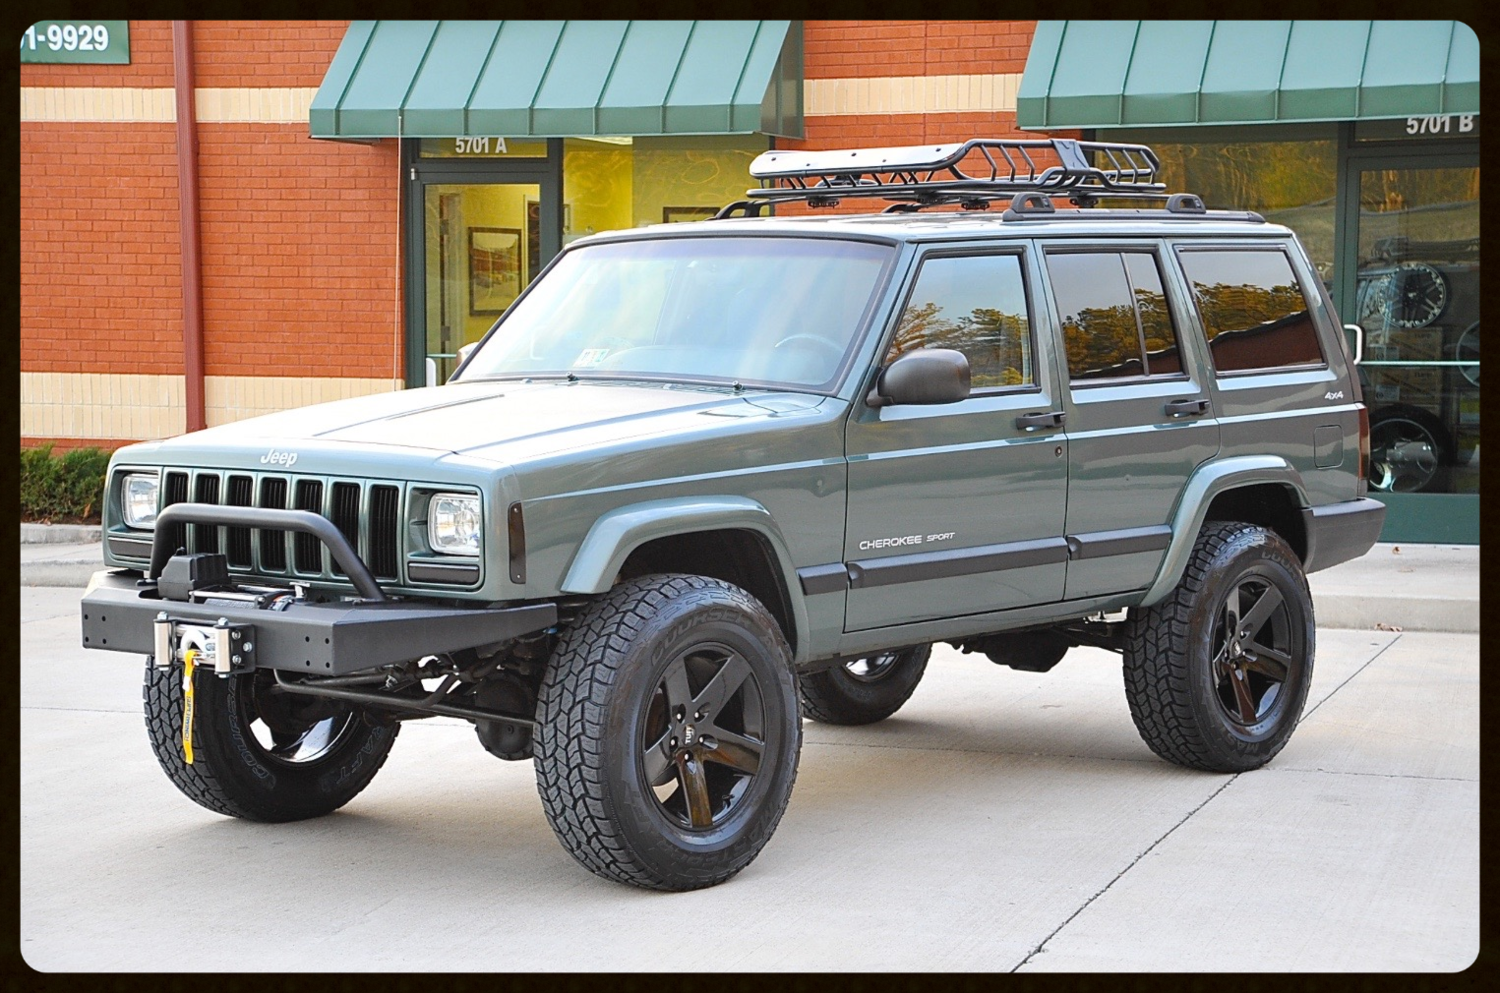 Lifted Cherokee Sport Xj For Sale Jeep Built Anybody Use The Volvo 2 Speed Fan Relay Pirate4x4com 4x4 And Off Davis Autosports